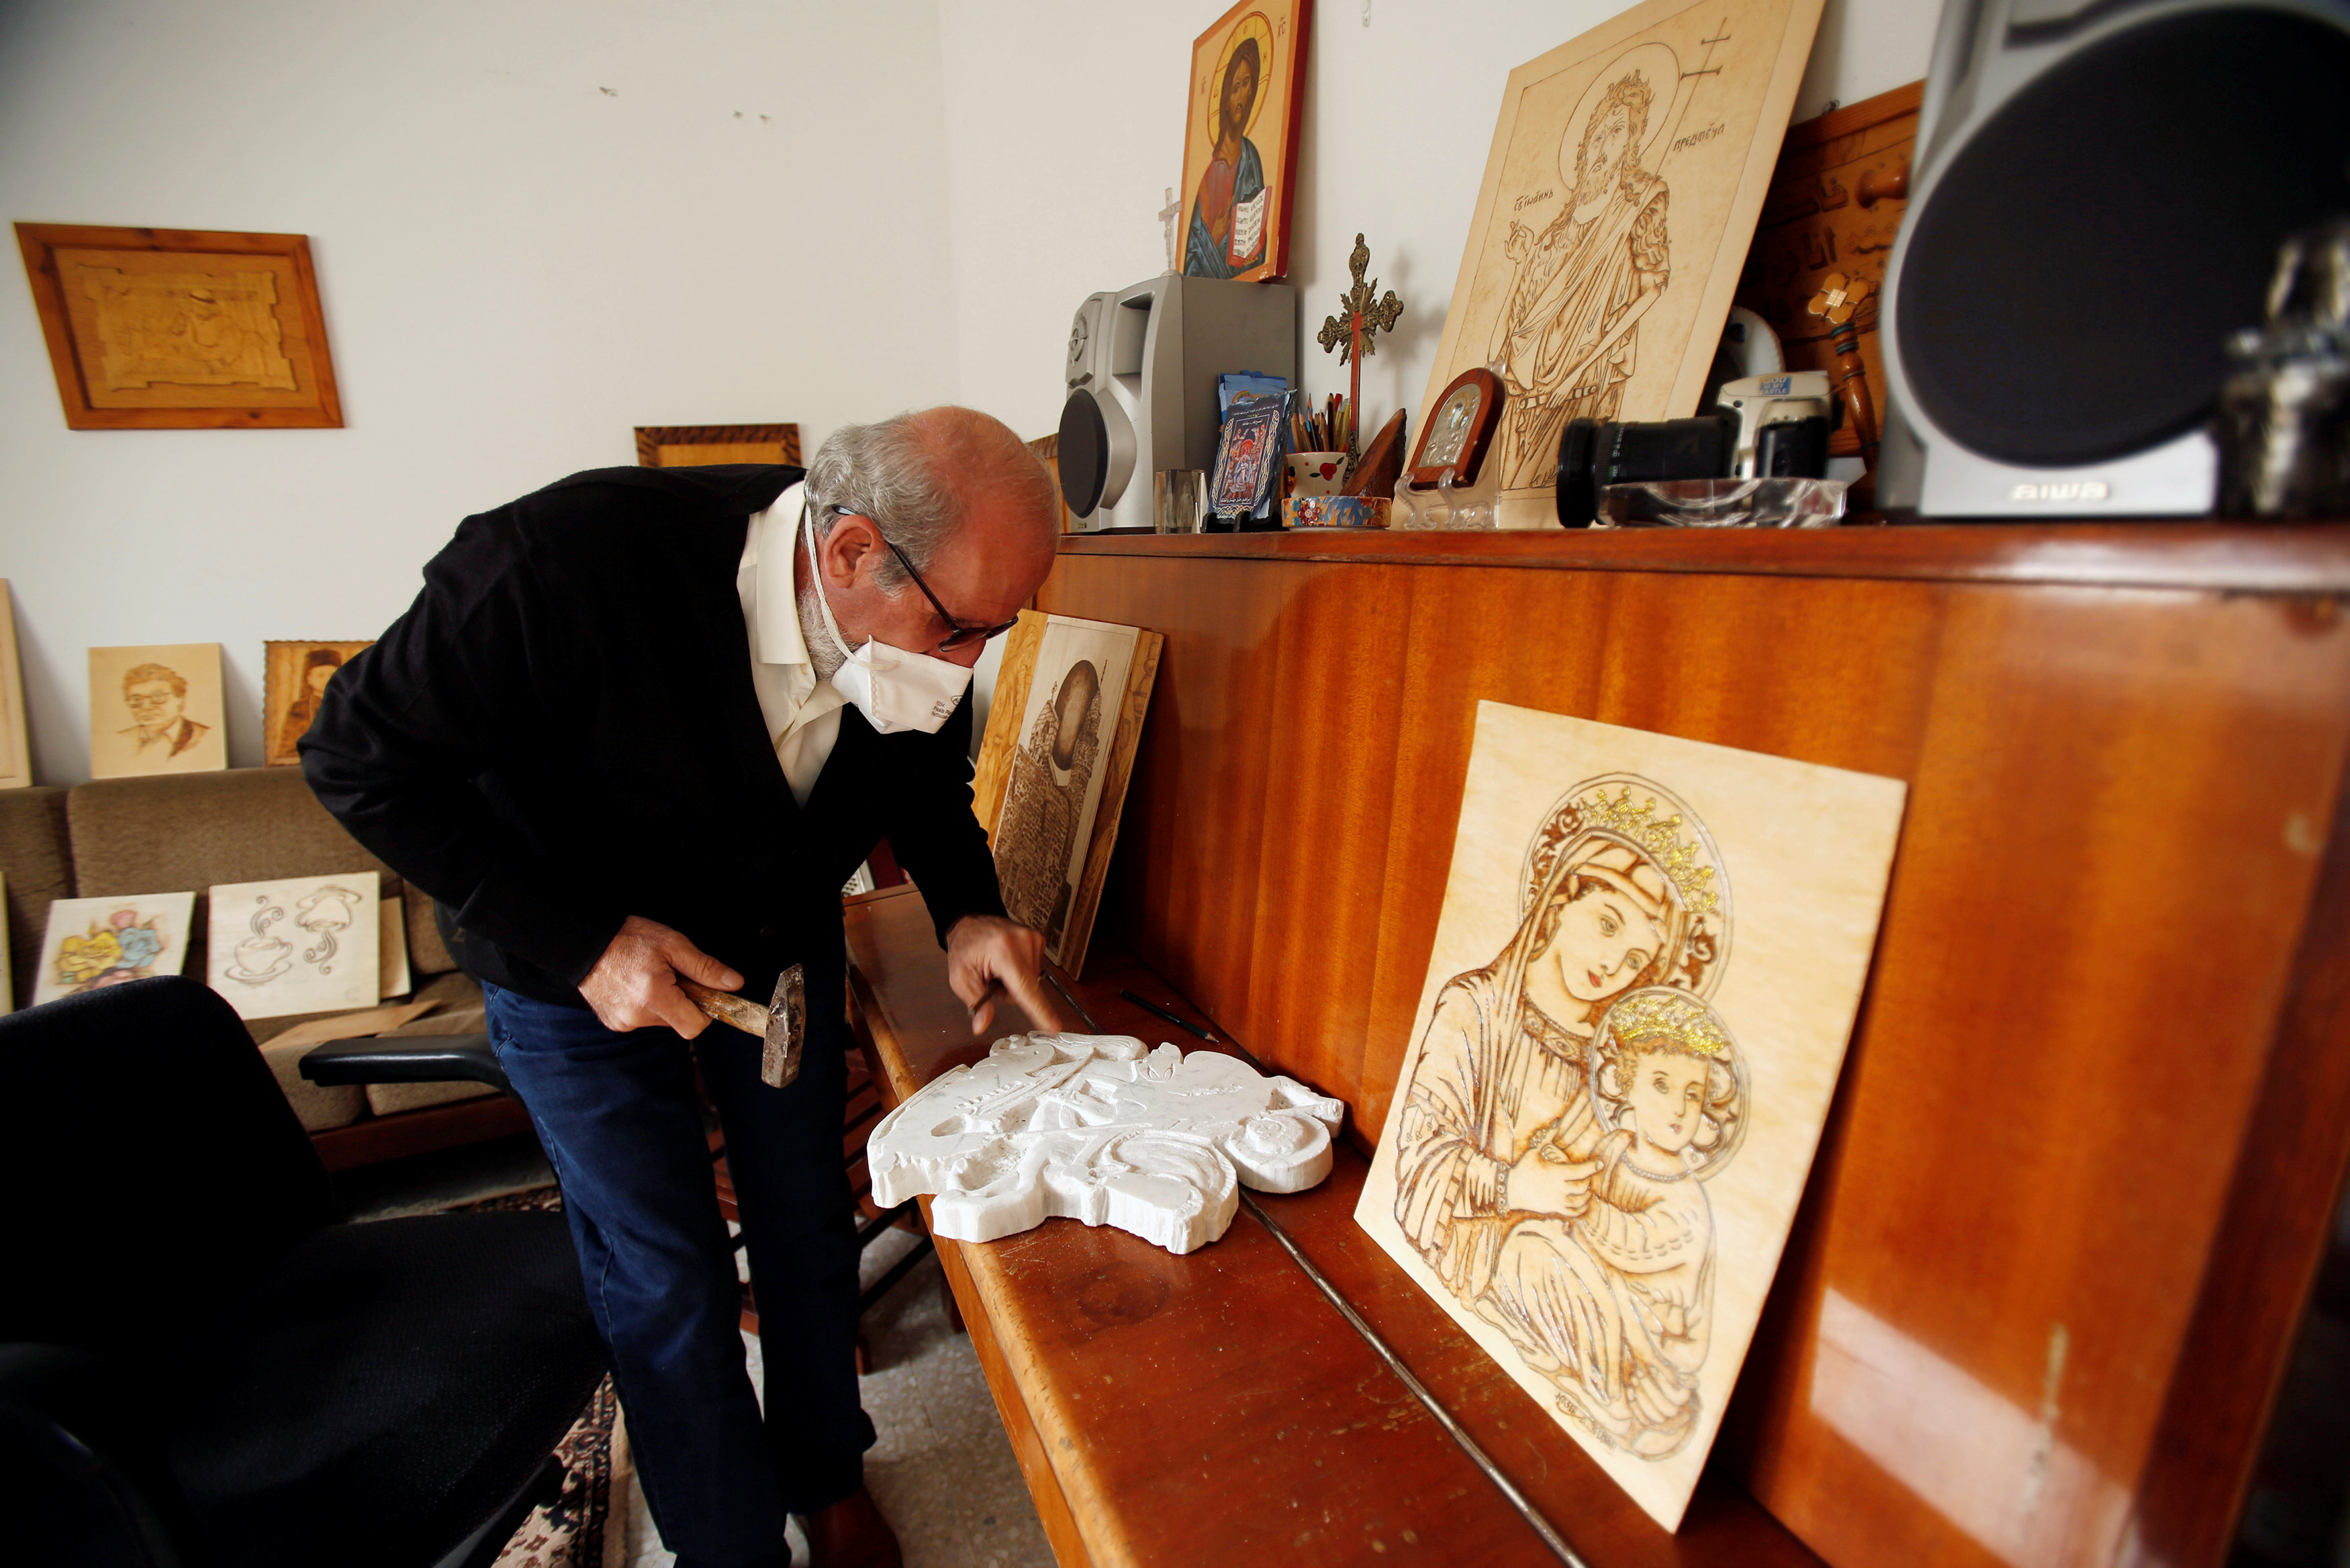 Christian artist Naser in Gaza